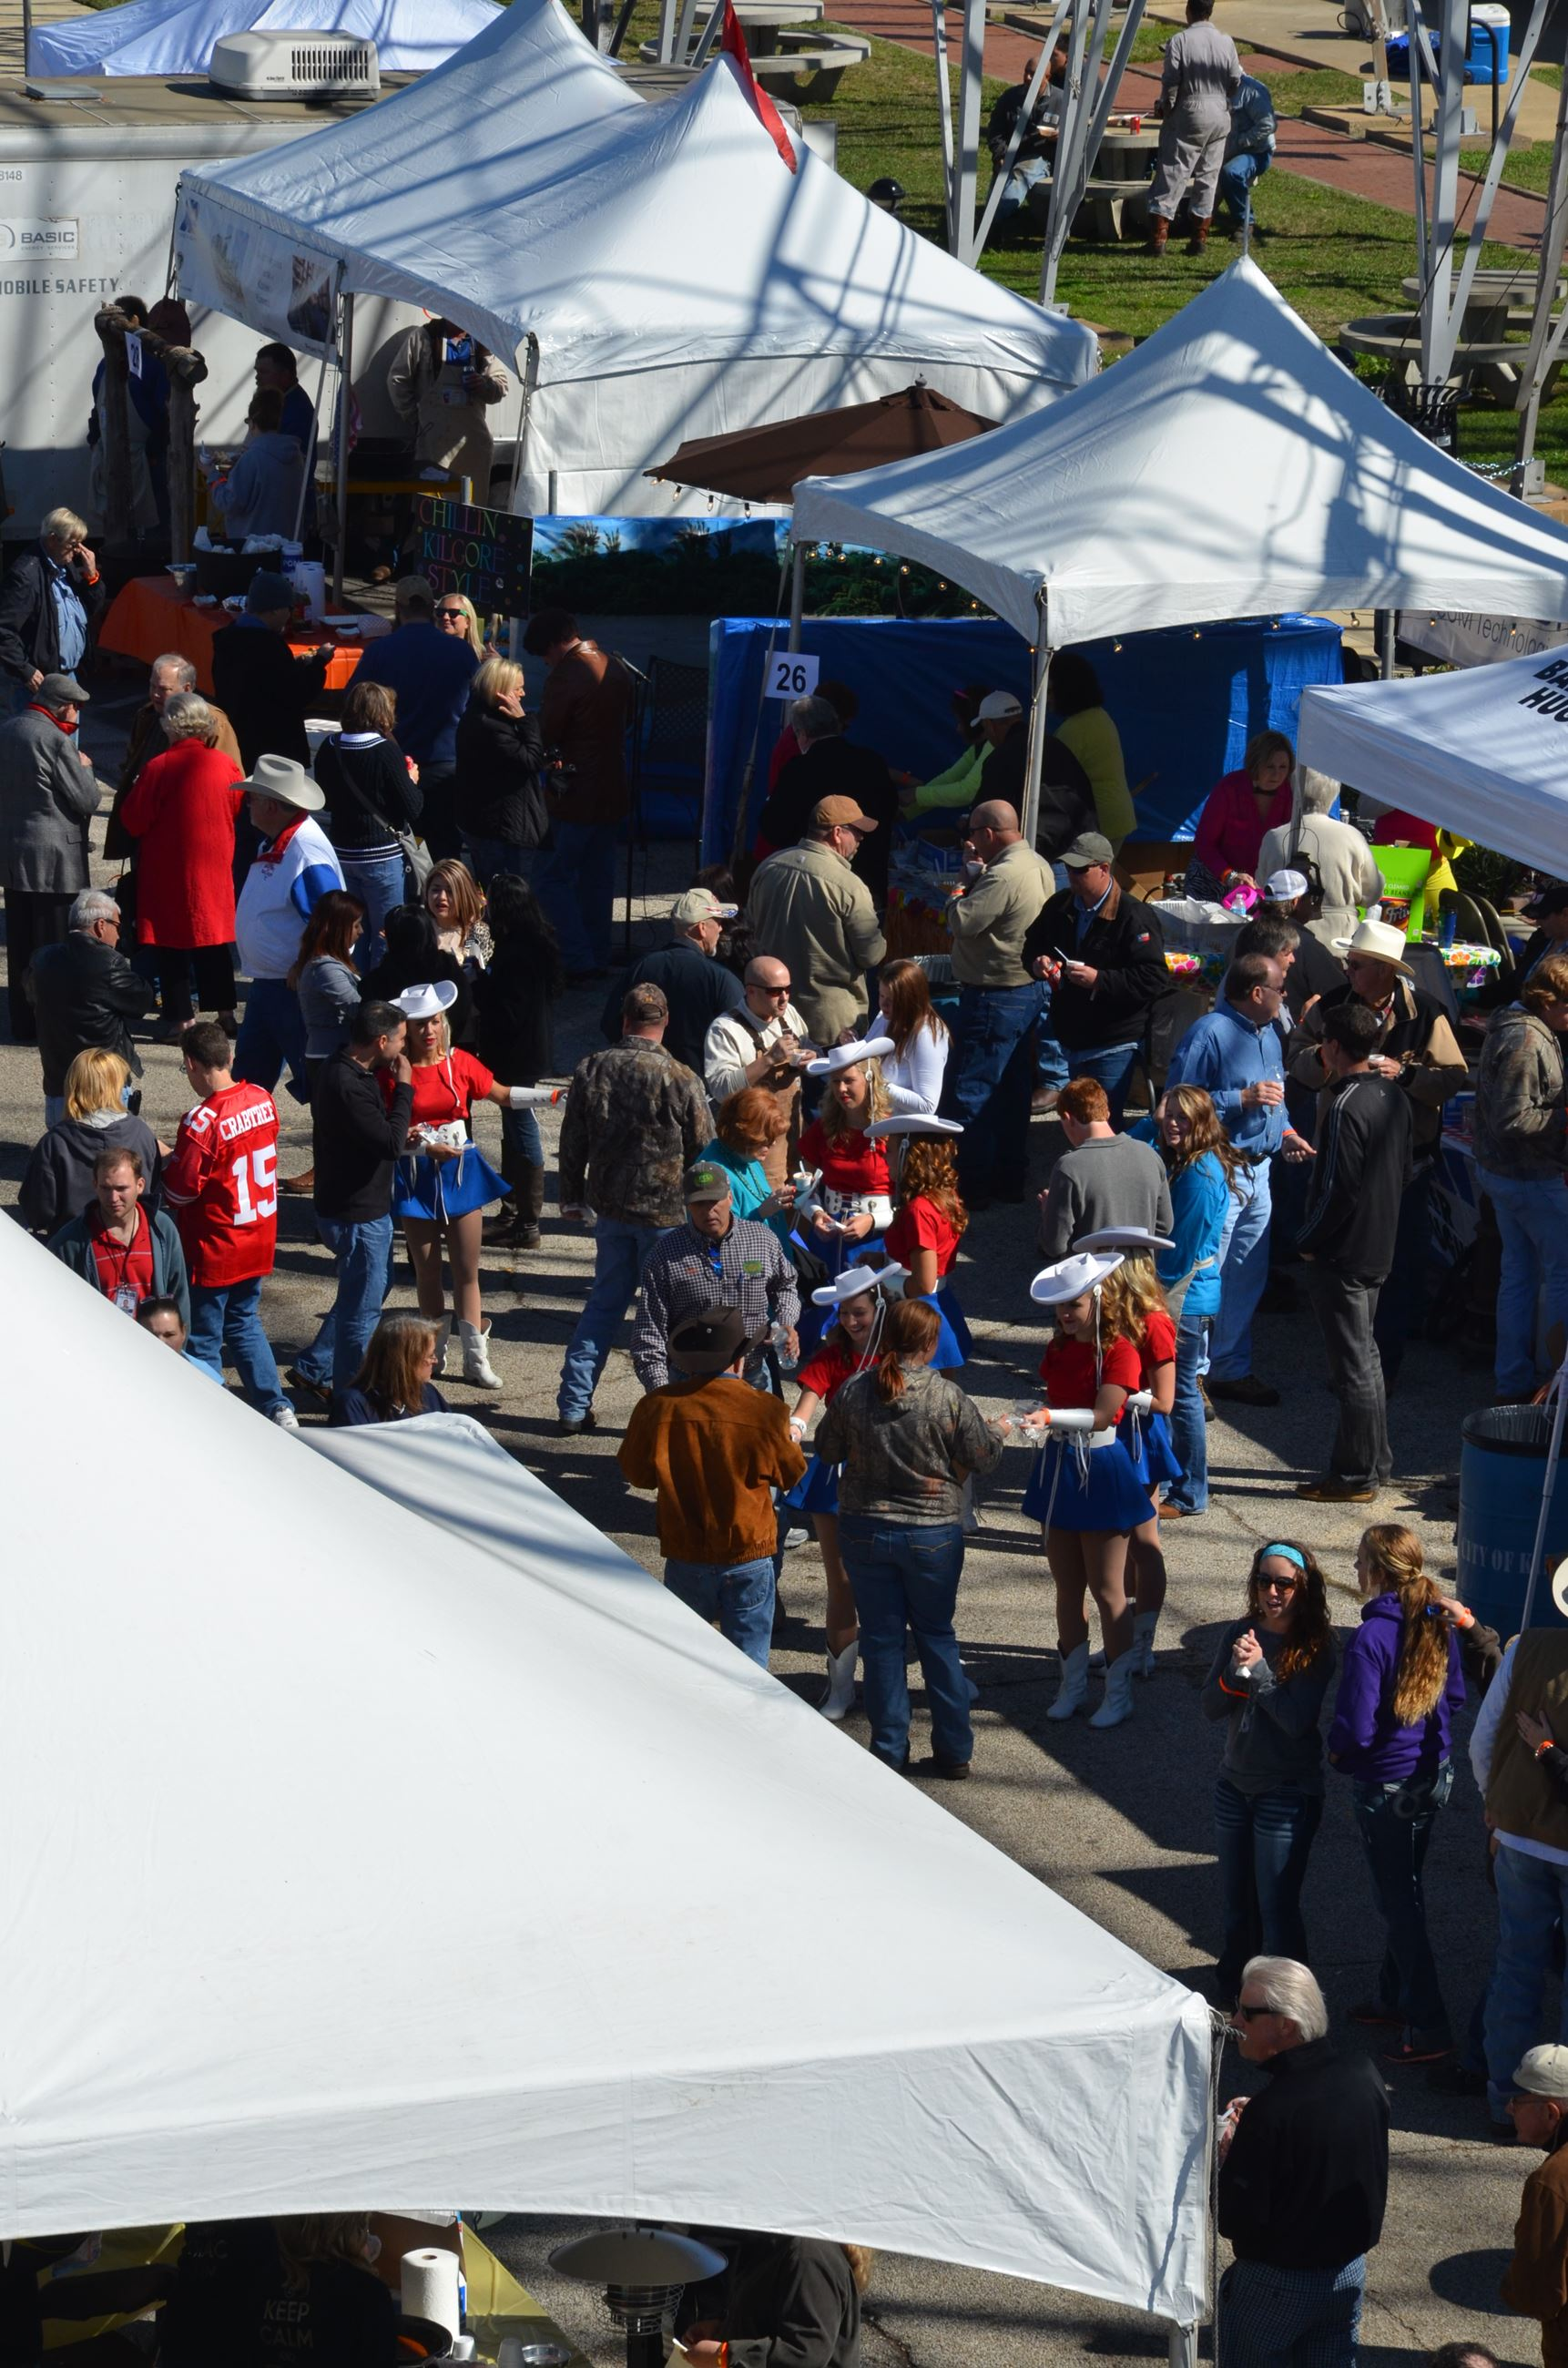 Aerial View of Oilmens Chili Cook-Off